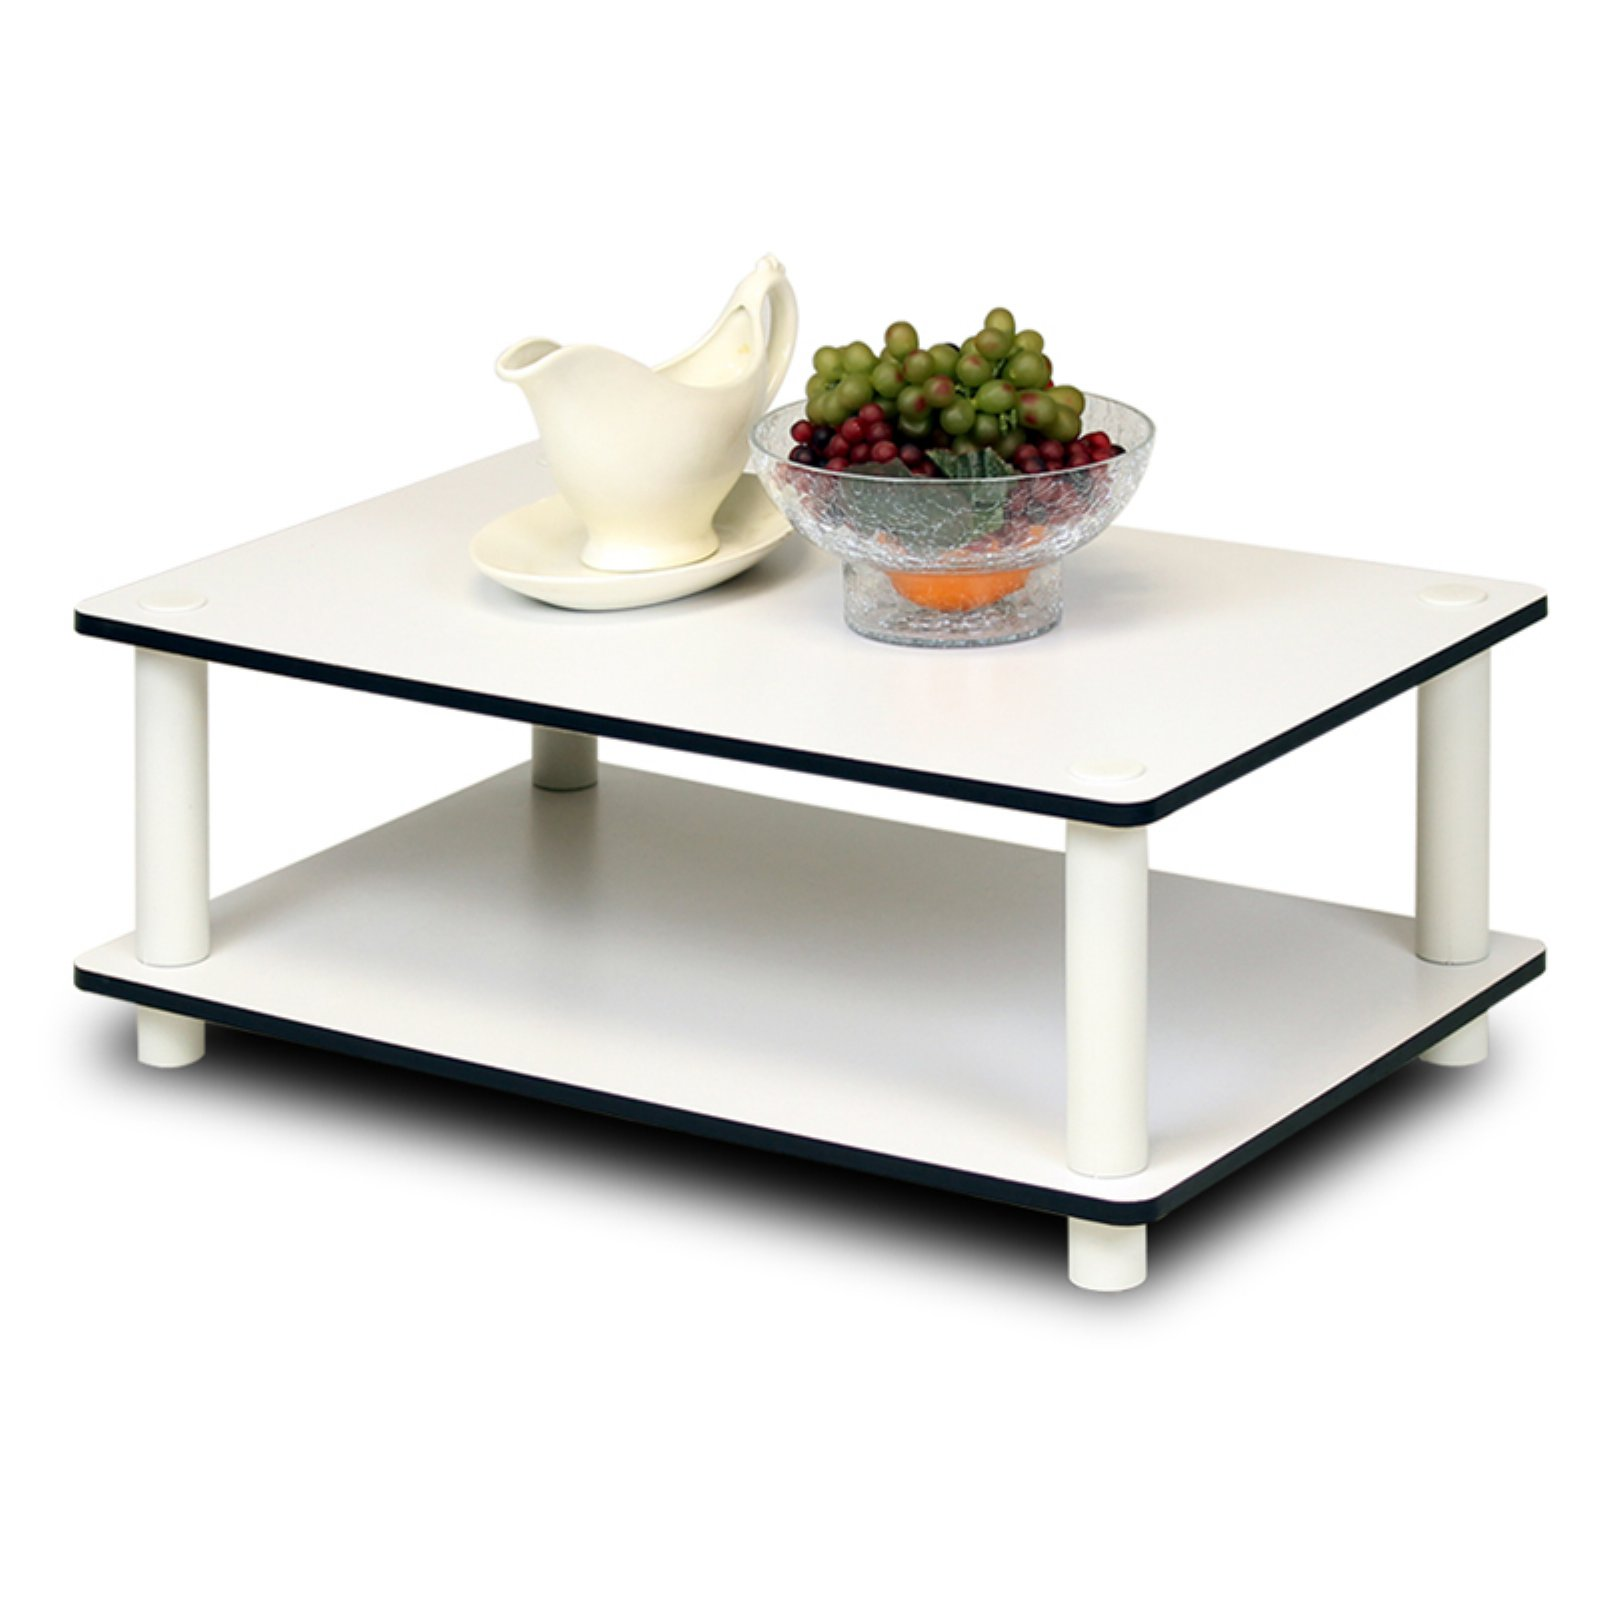 Furinno 11172 Just 2-Tier No-Tools Coffee Table by Furinno